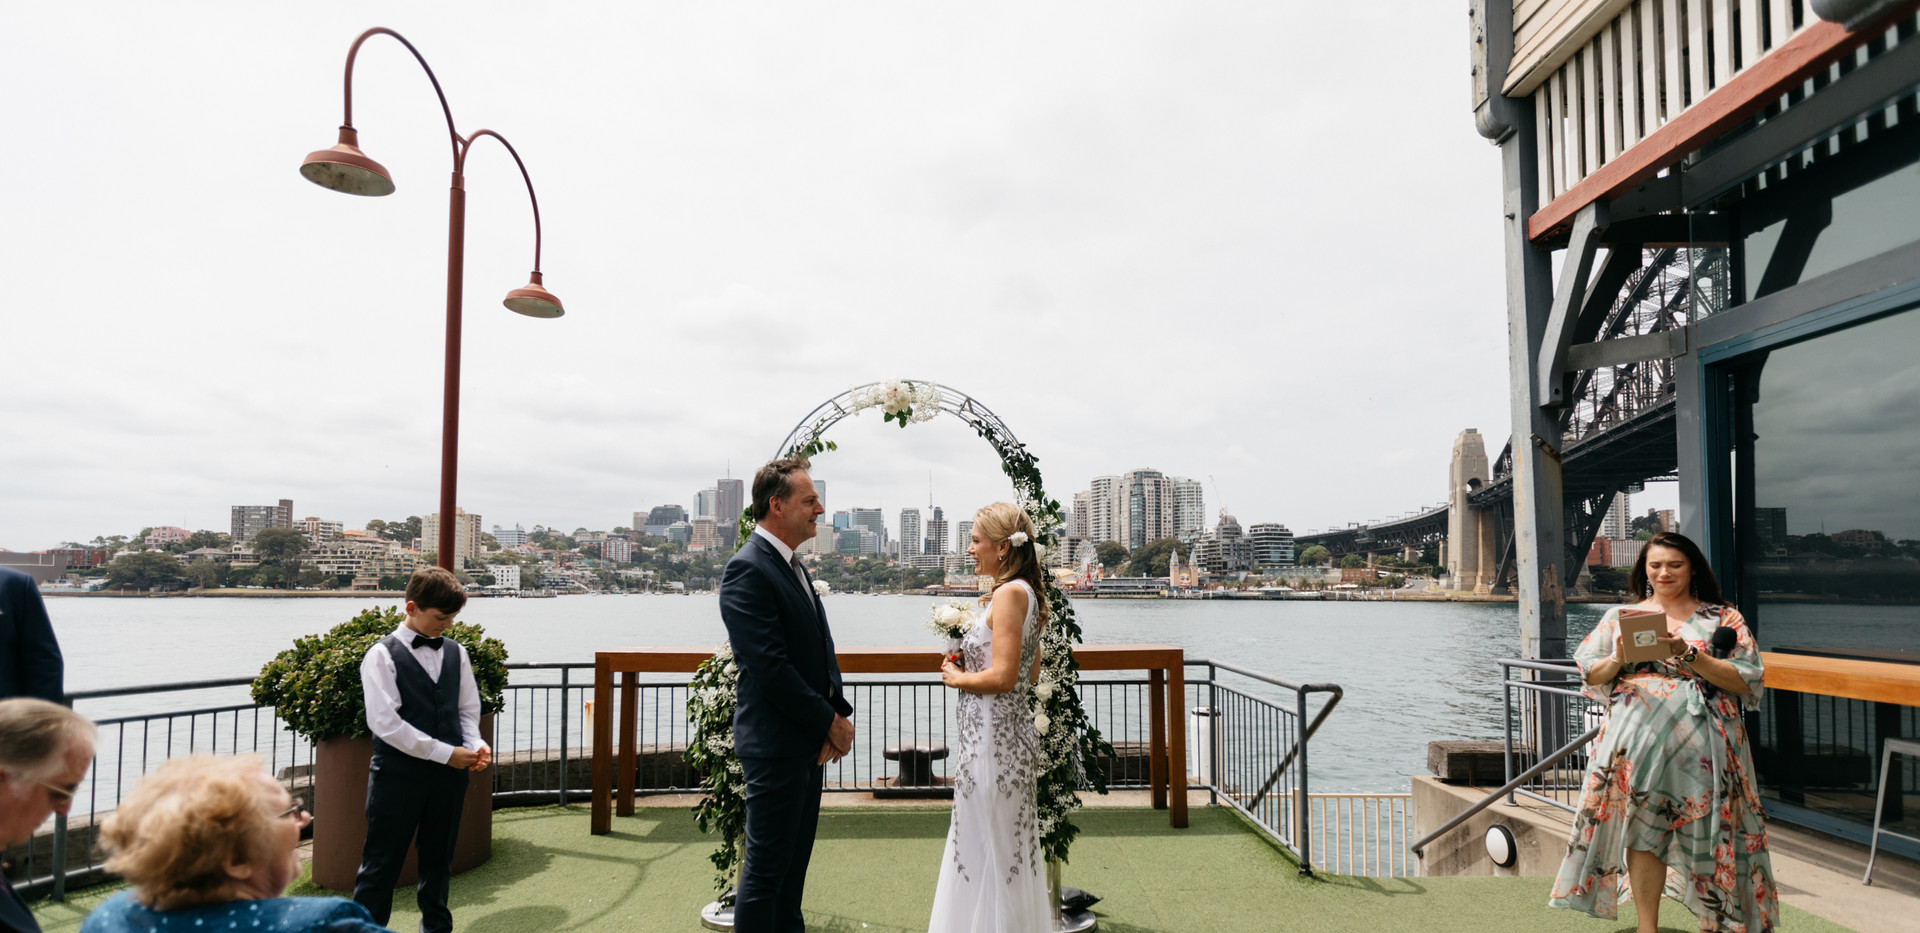 You are now husband and wife with Jo Booth, Sydney marriage celebrant officiating